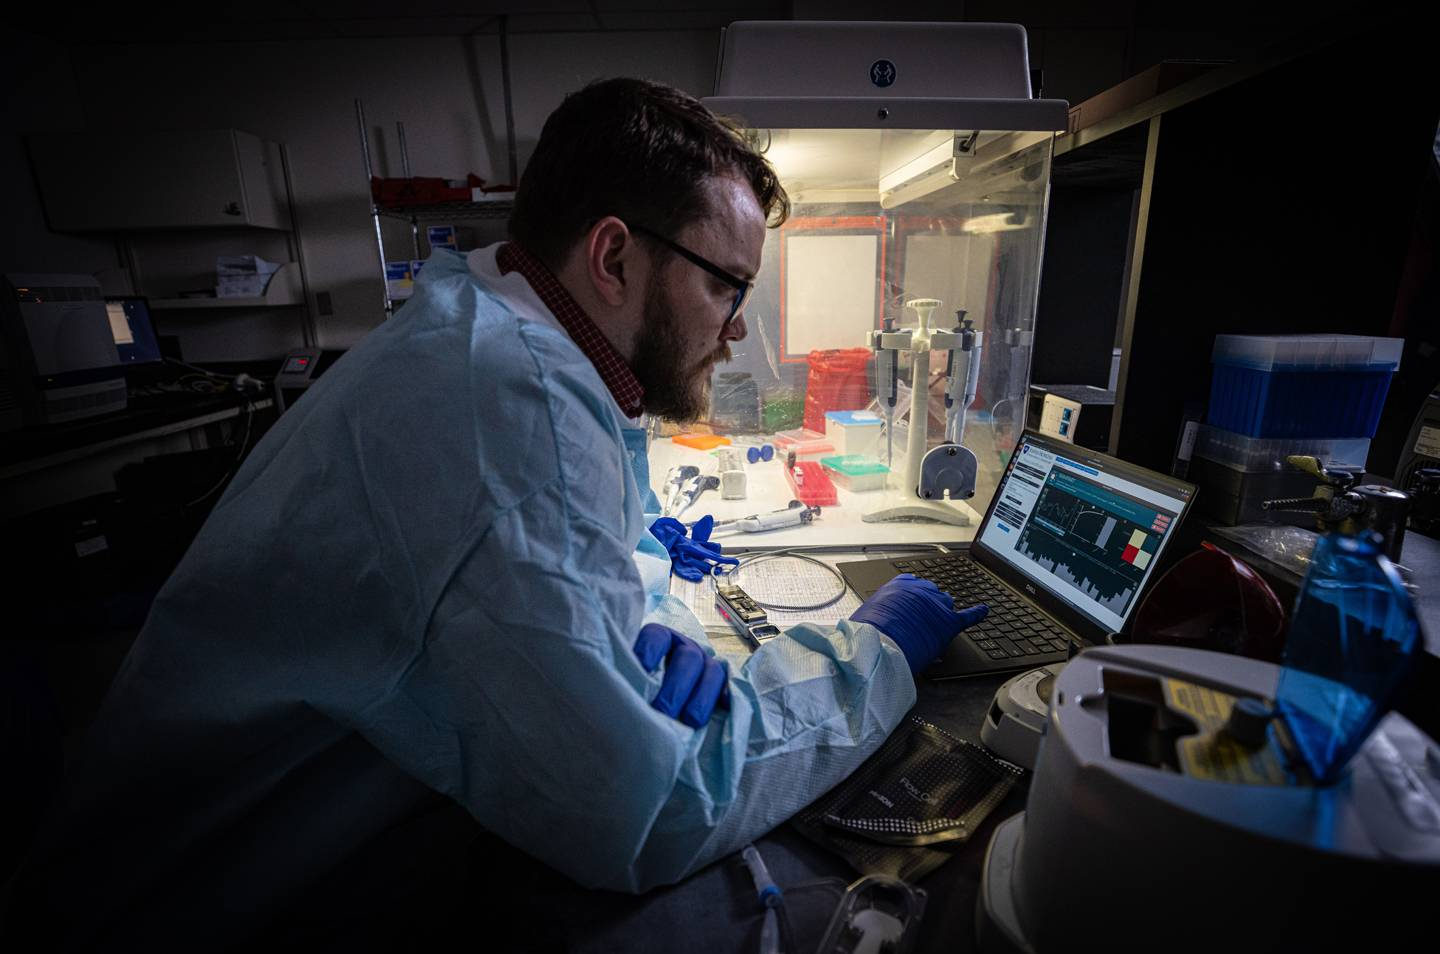 APL biologist Tom Mehoke reviews the DNA sequencing analysis of SARS-CoV-2, the virus causing COVID-19, at the molecular diagnostics laboratory at Johns Hopkins Hospital.